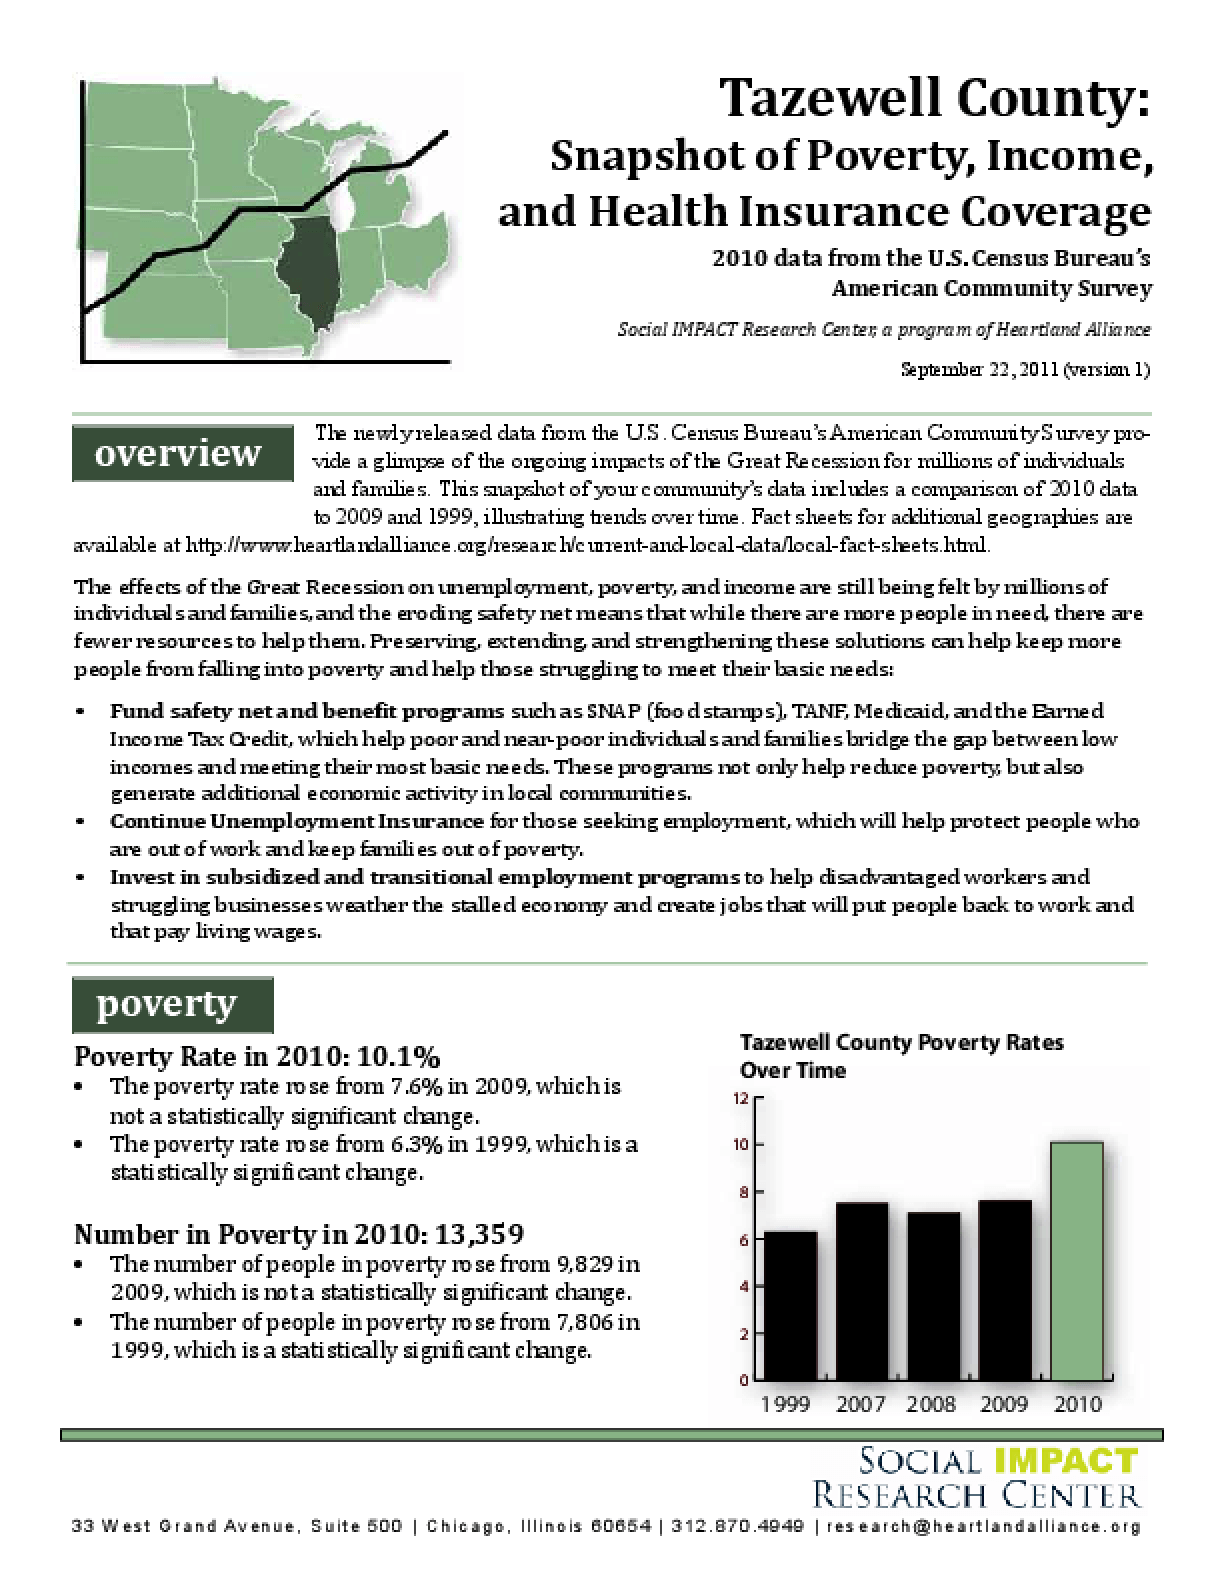 Tazewell: Snapshot of Poverty, Income, and Health Insurance Coverage